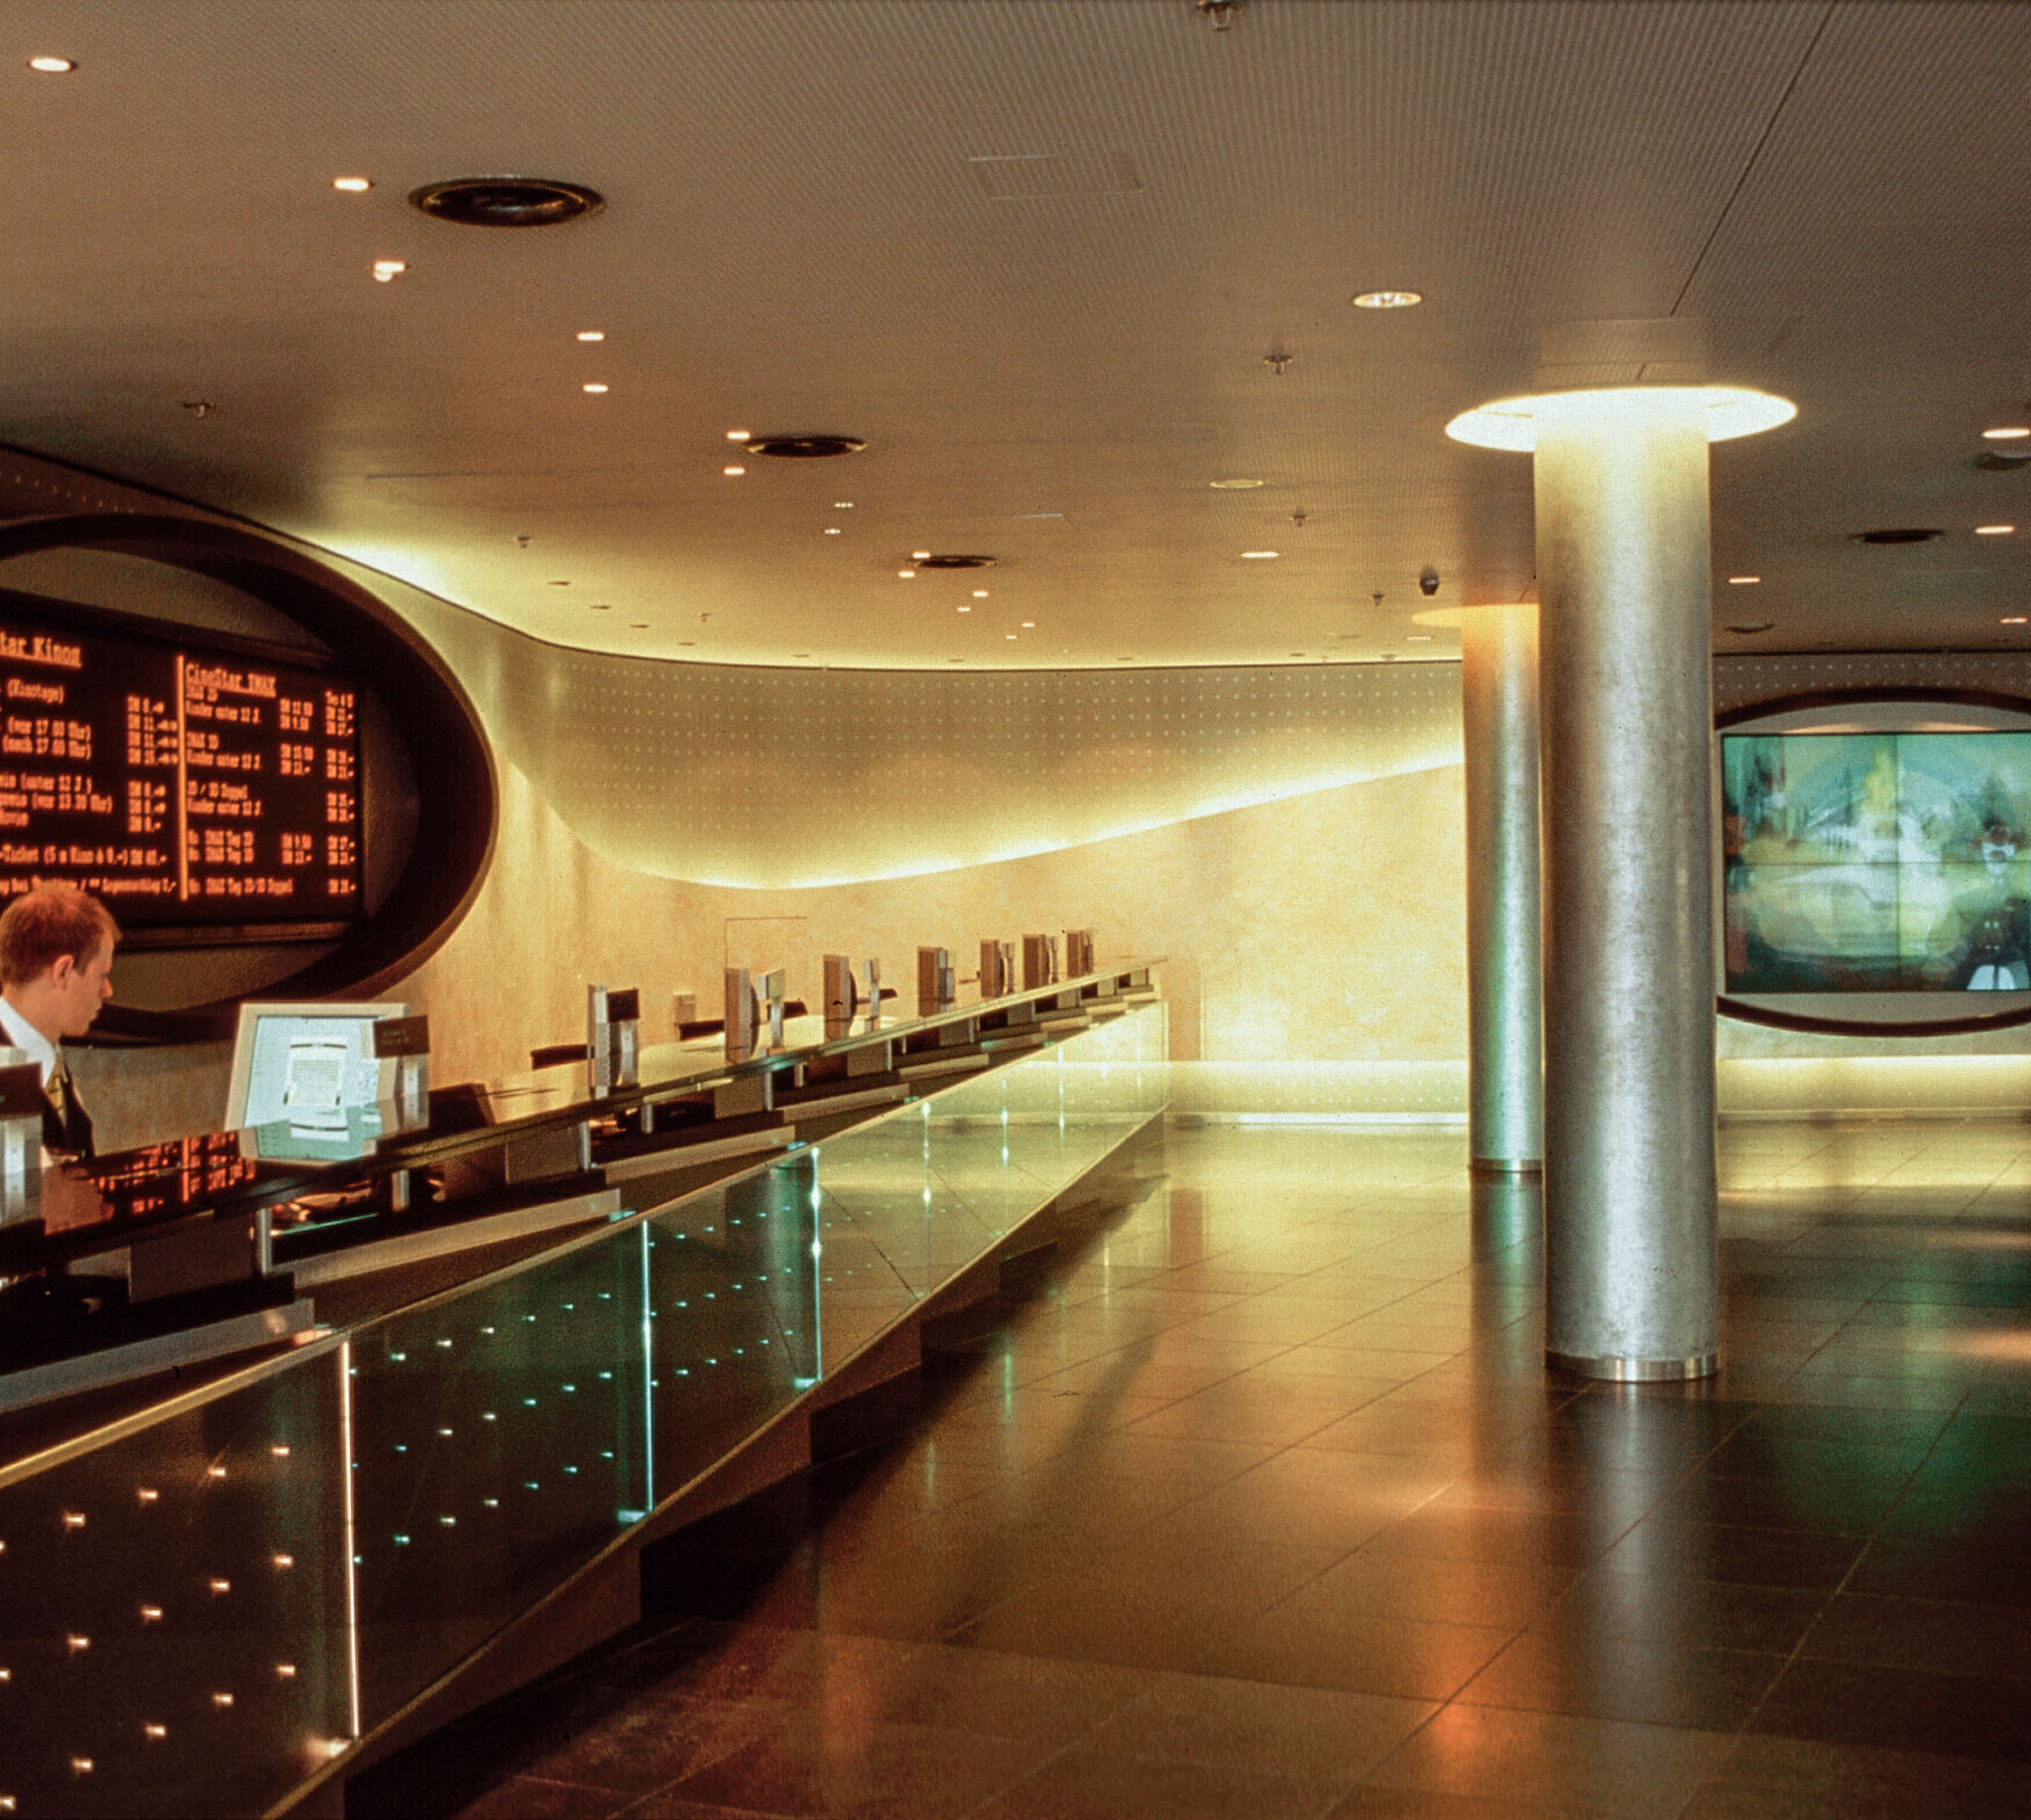 Sony-Center Kino, Potsdamer Platz 3